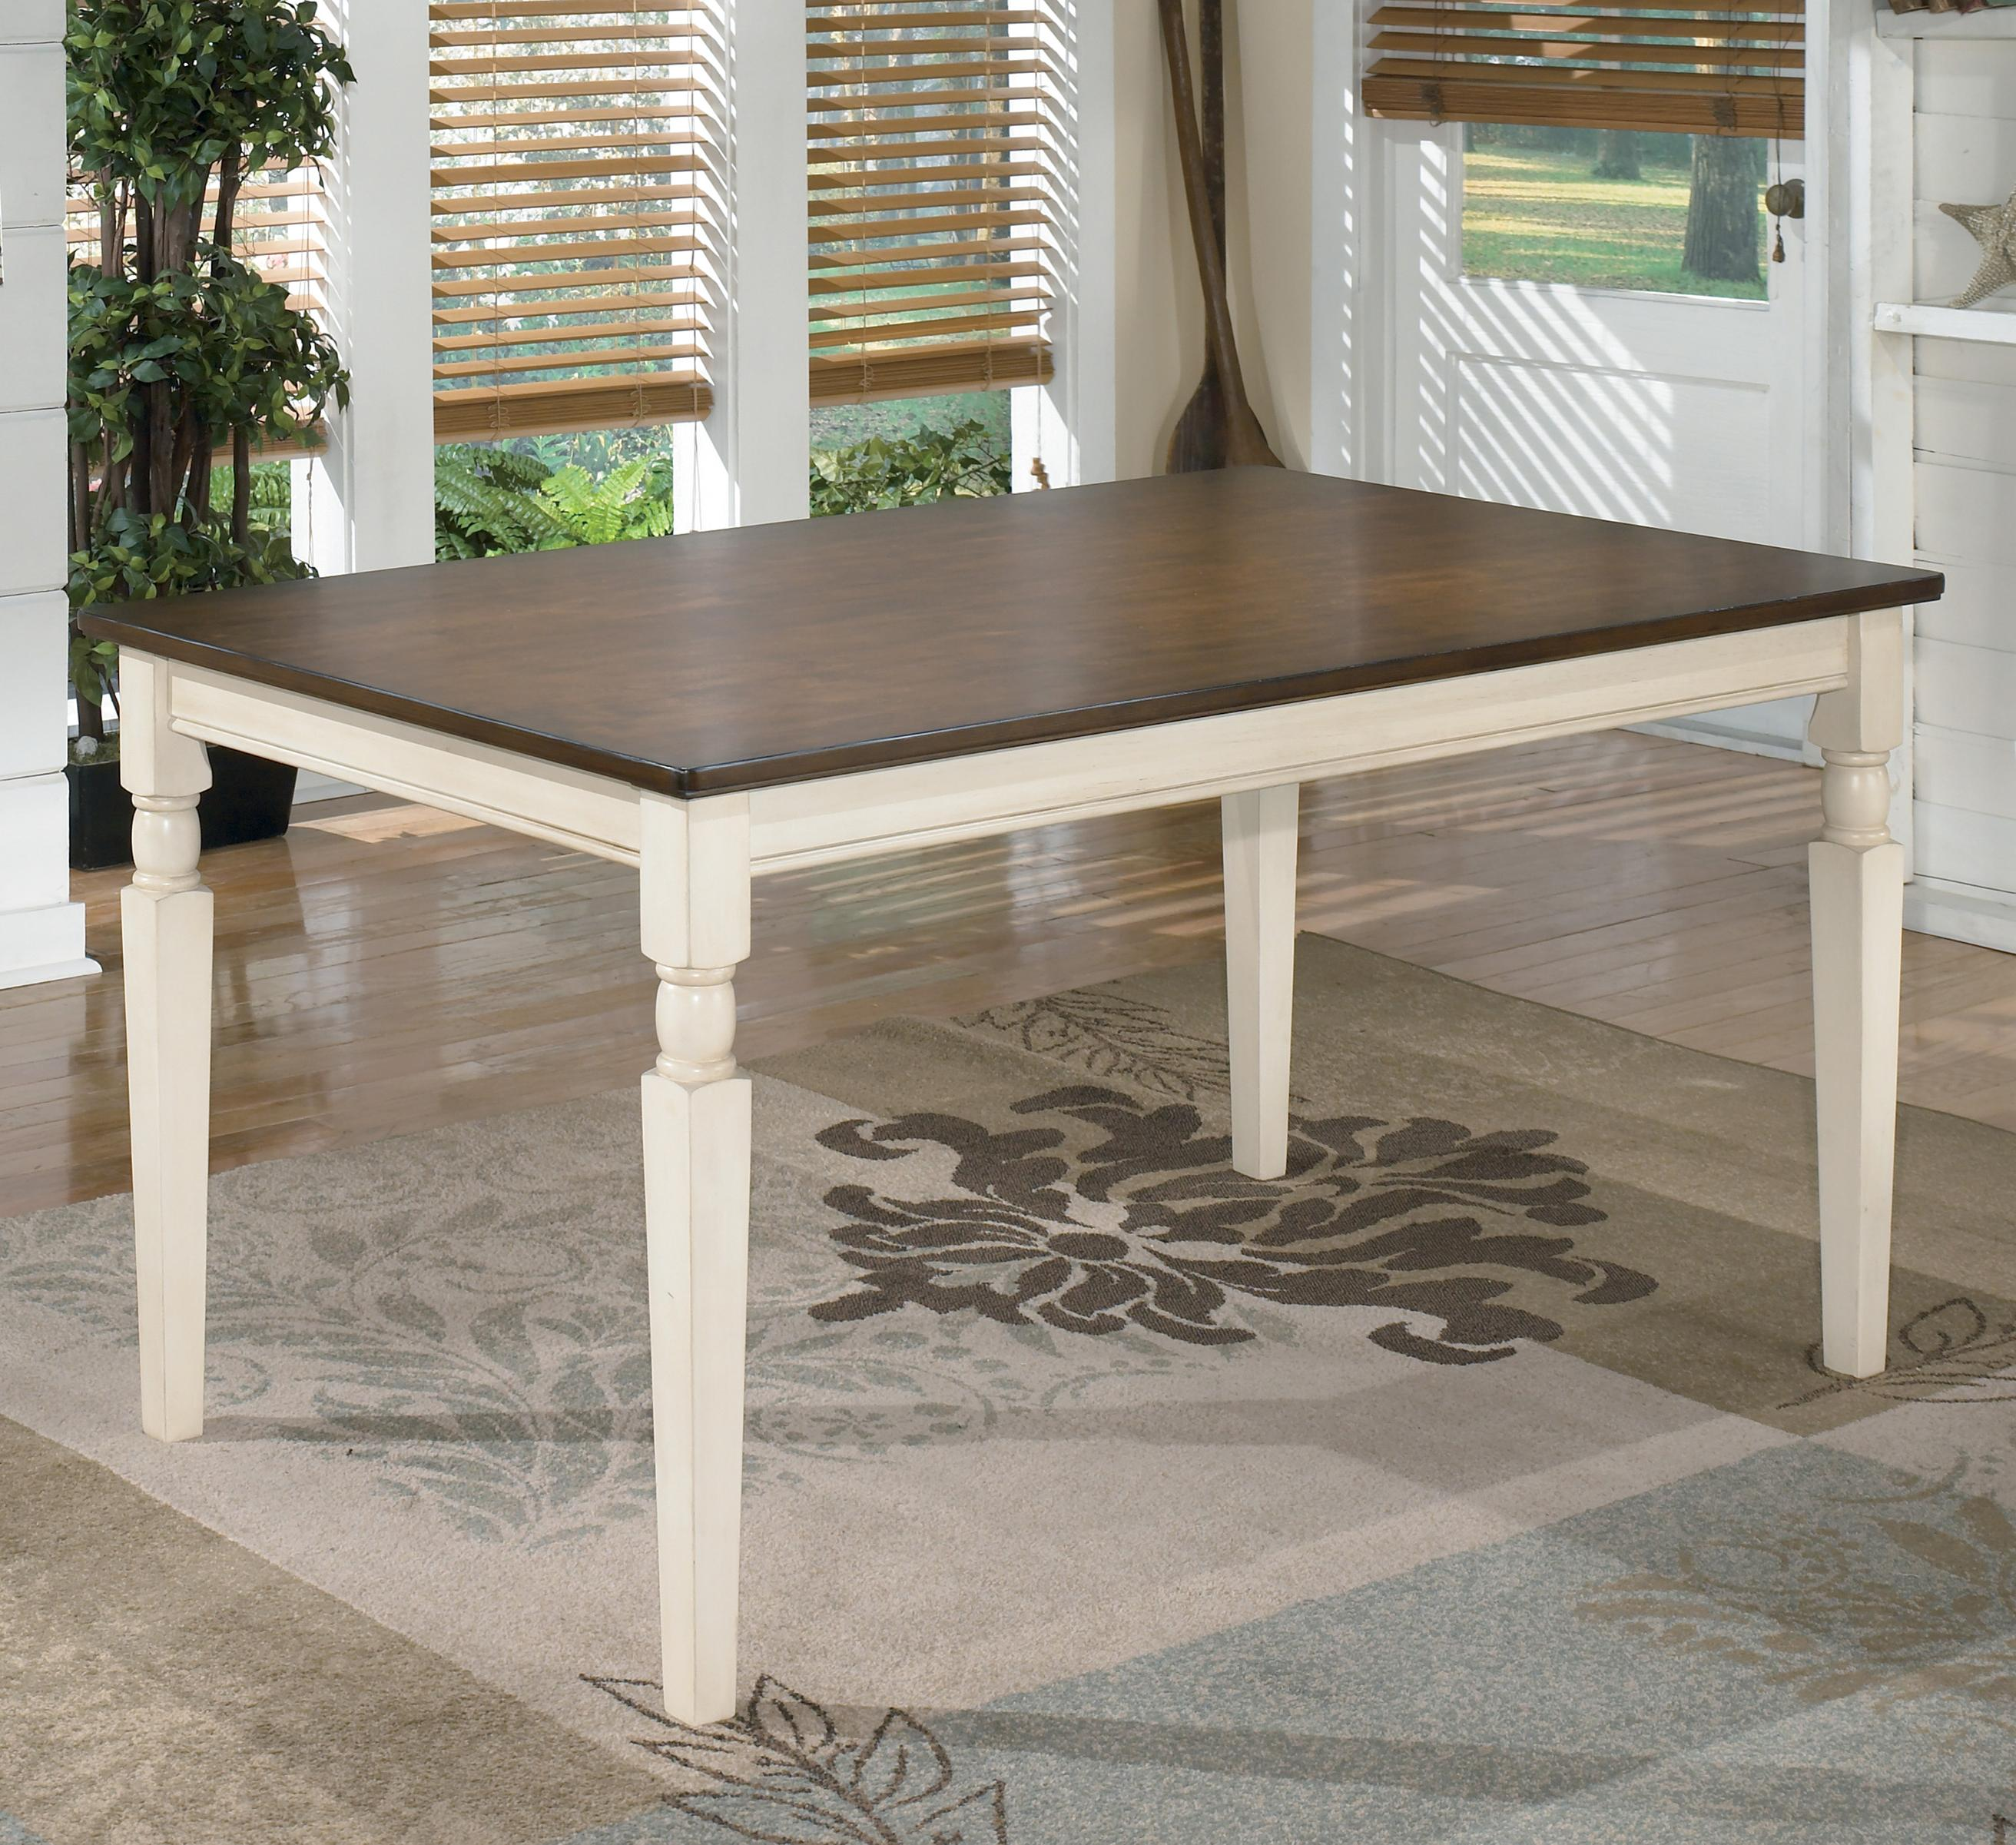 Signature Design by Ashley Whitesburg Rectangular Dining Room Table - Item Number: D583-25